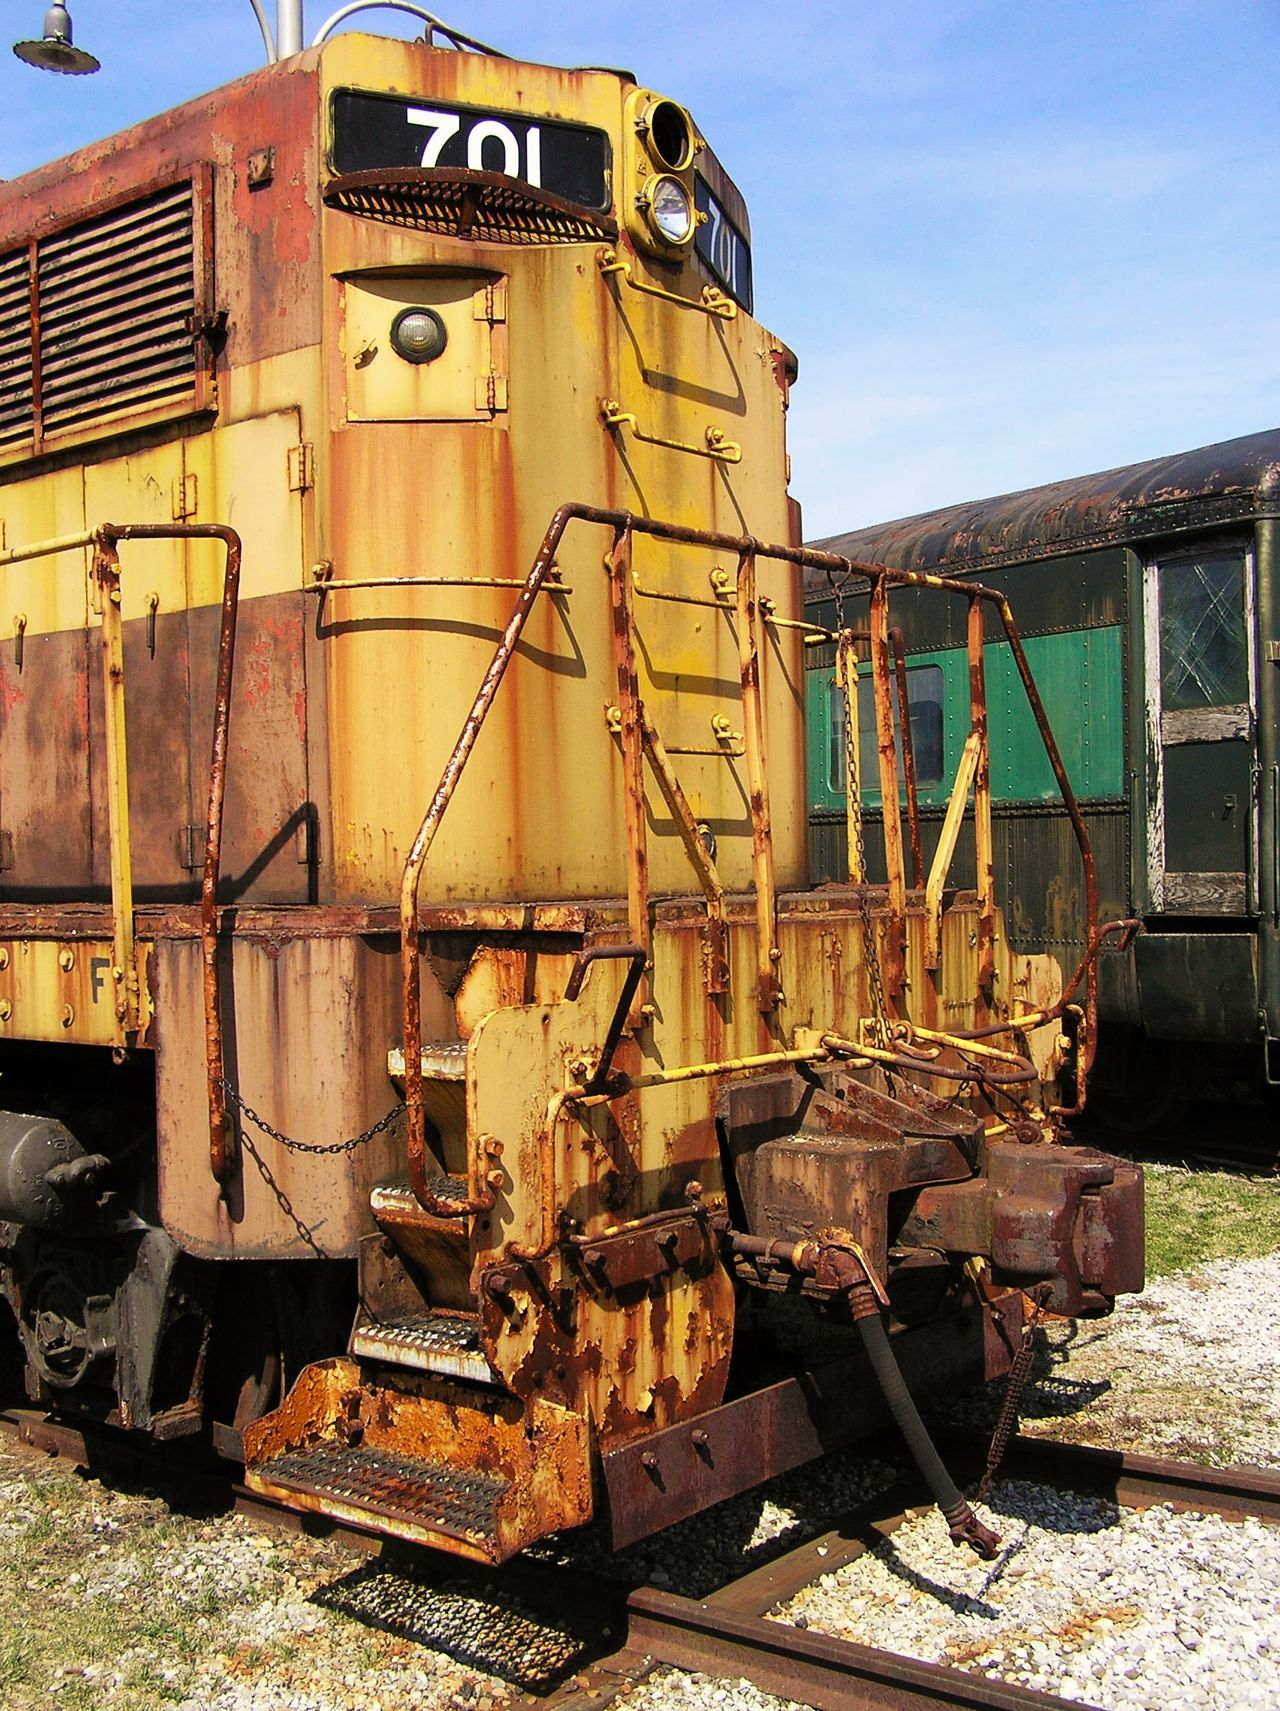 Architecture Battered Coupler Day Diesel Engine Handrail Metal Locomotive Engine Metal Ladder No People Outdoors Railroad Rust Train Engine Work Horse Yellow Color